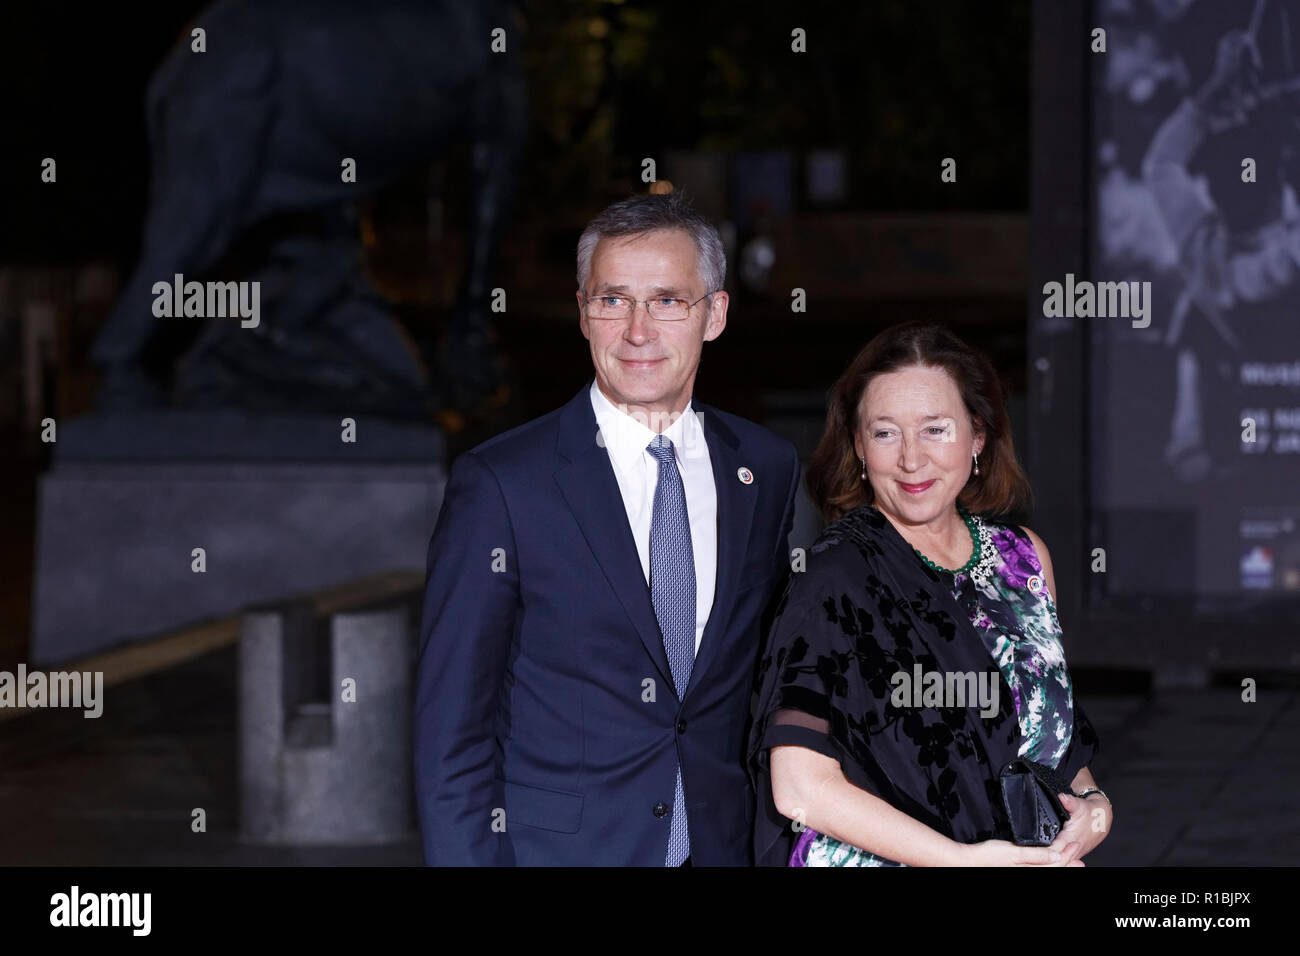 Paris, France. 10th Nov, 2018. Arrival of North Atlantic Treaty Organization Secretary General Jens Stoltenberg and his wife Ingrid Schulerud for dinner in the presence of the heads of state, government and international organization leaders during the international commemoration of the centenary of the 1918 armistice at the Musée d'Orsay in Paris on November 10, 2018 in Paris, France. Credit: Bernard Menigault/Alamy Live News Stock Photo